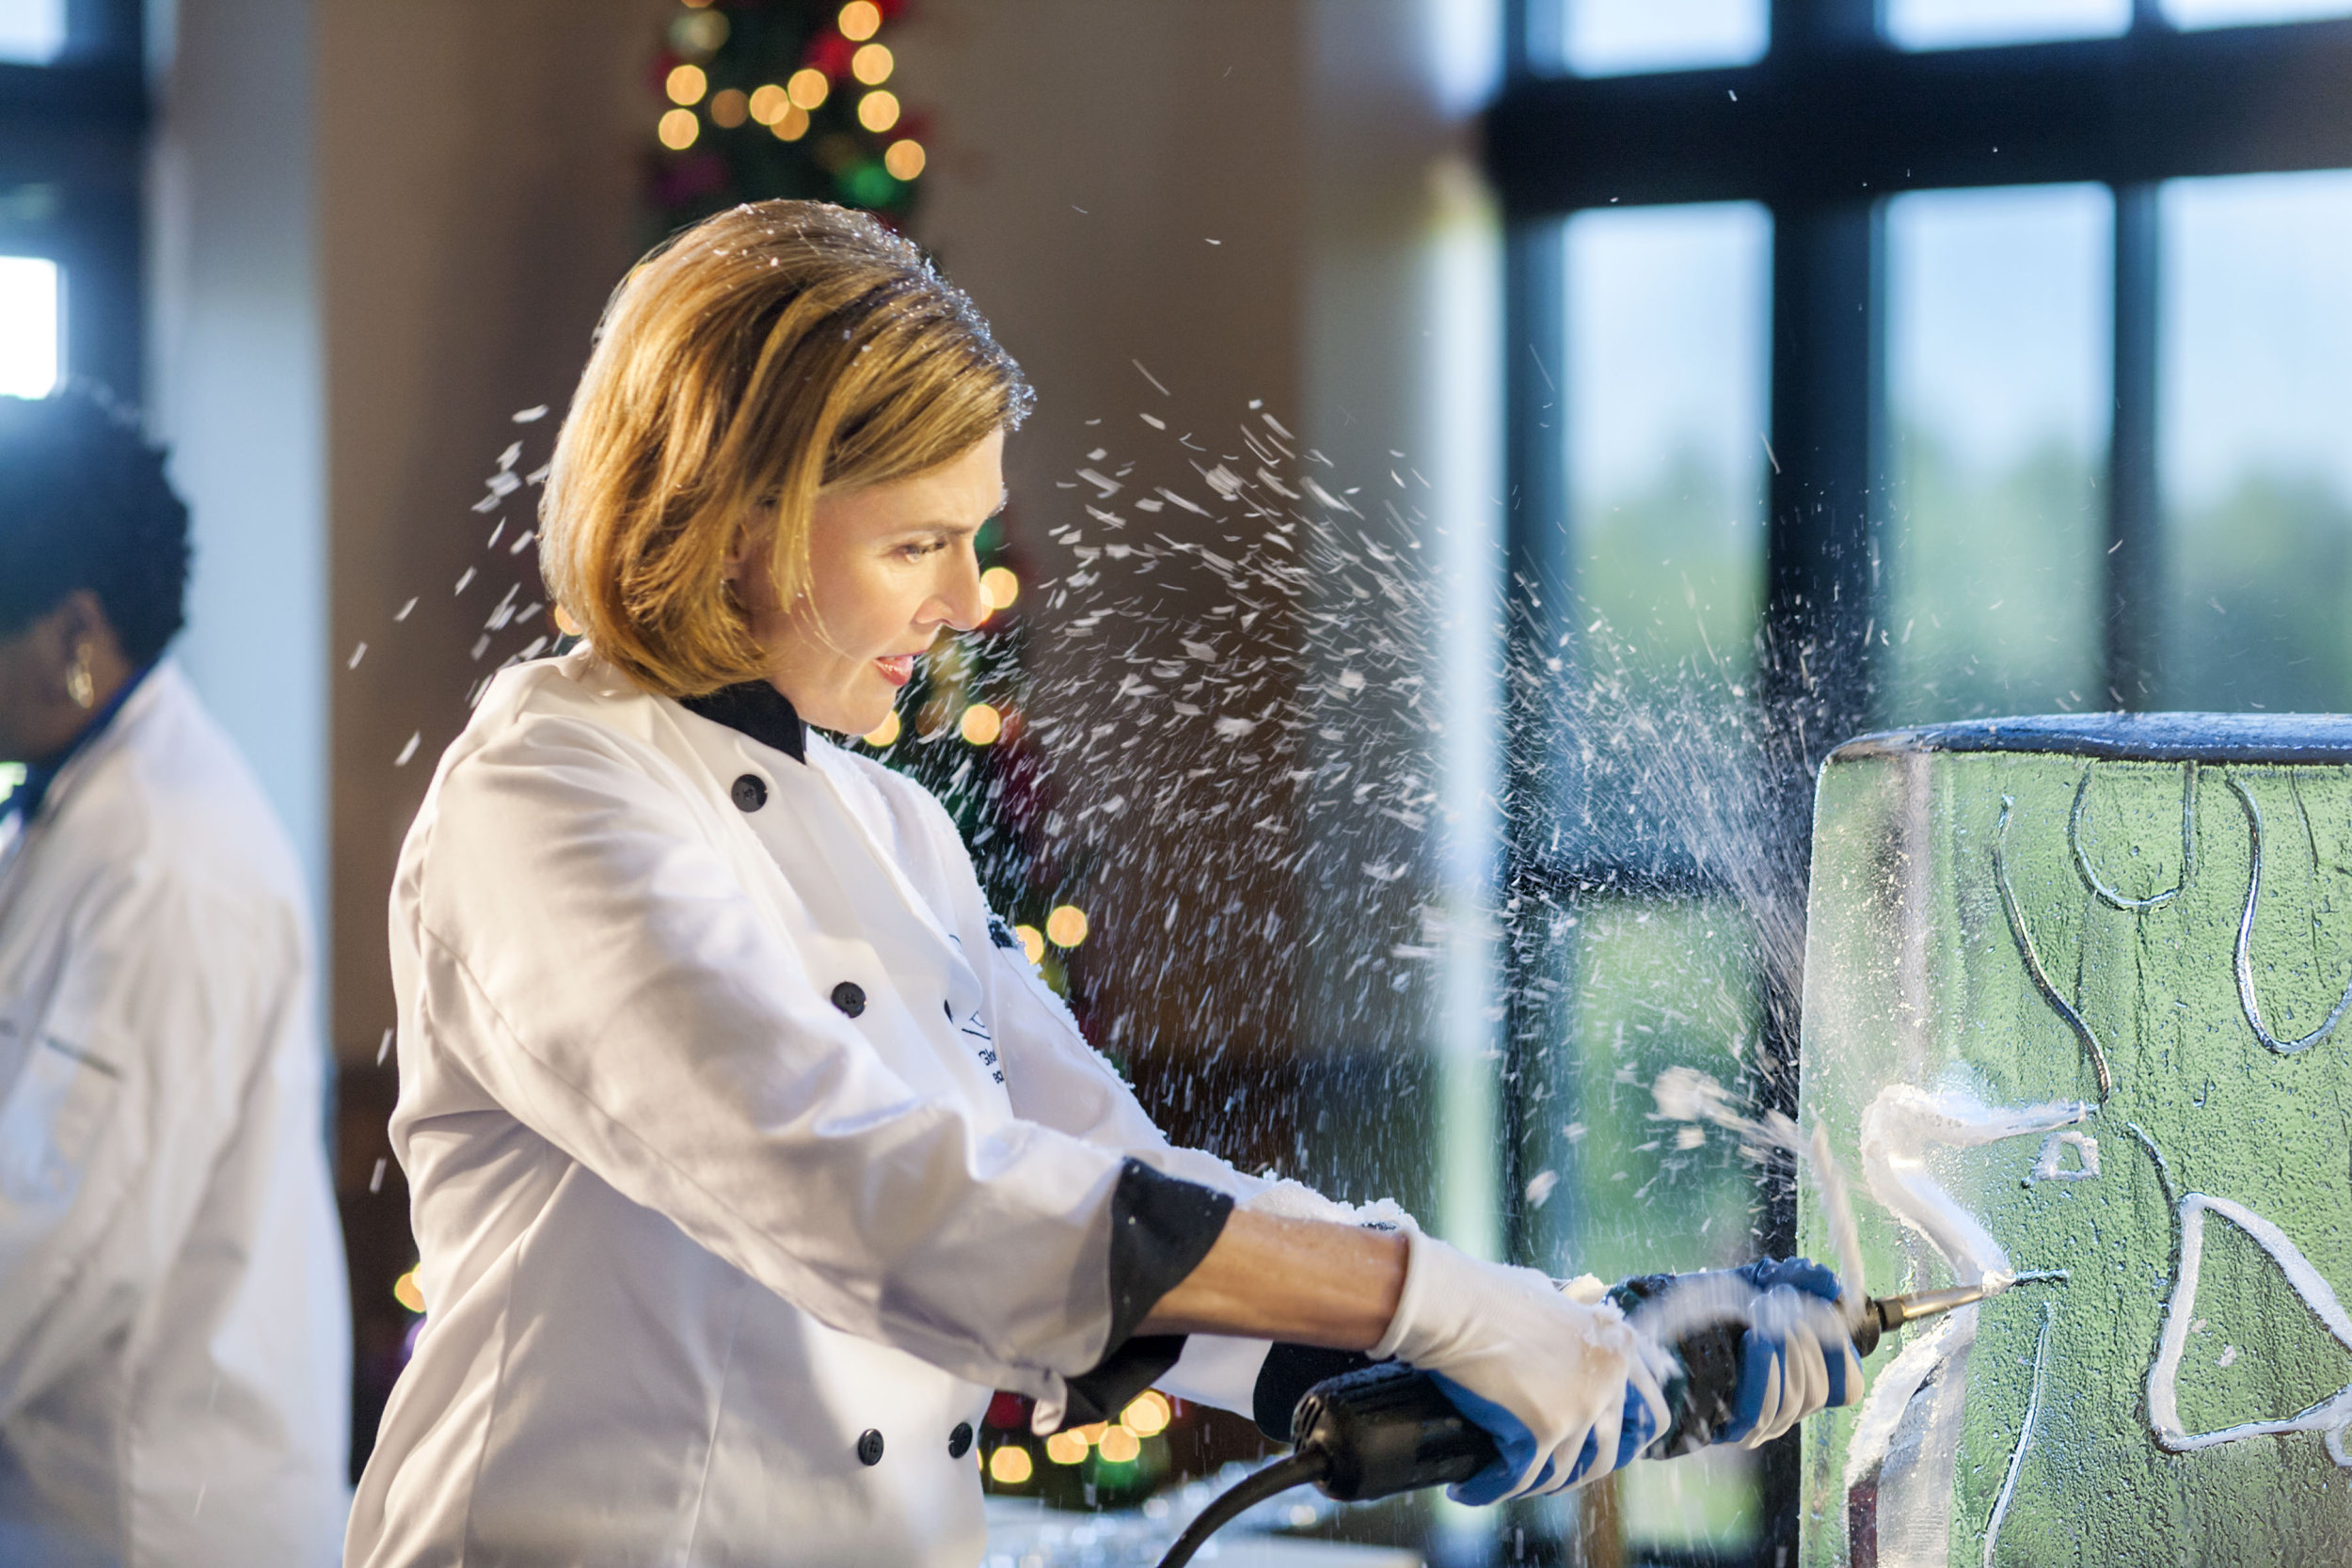 Ice Sculpture Christmas.Brenda Strong As Chef Gloria On Ice Sculpture Christmas